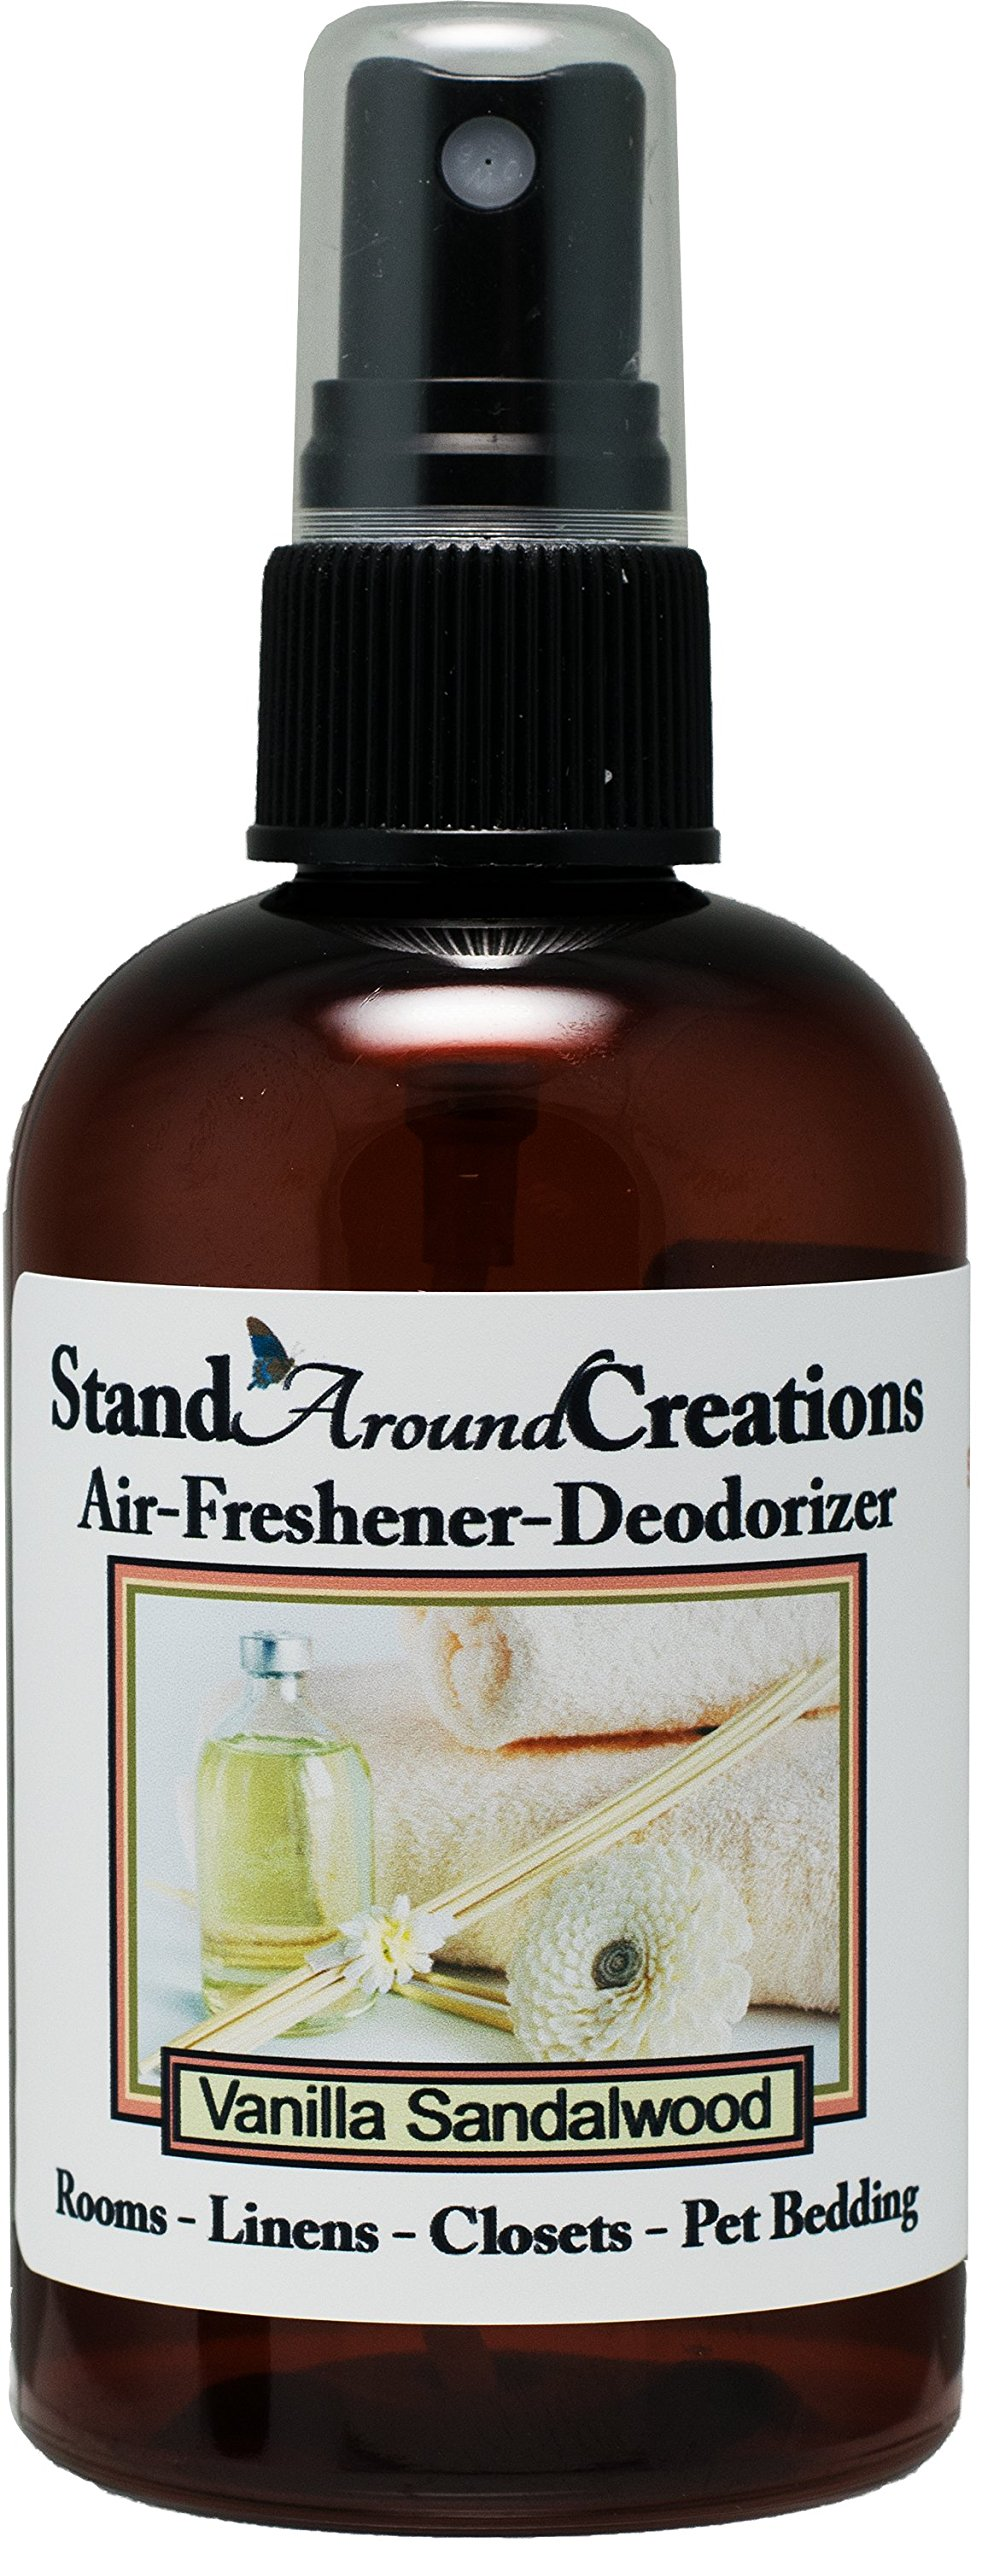 Concentrated Spray For Room / Linen / Room Deodorizer / Air Freshener - 4 fl oz - Scent - Vanilla Sandalwood: A beautiful combination of luscious rich vanilla, and Indian Sandalwood.